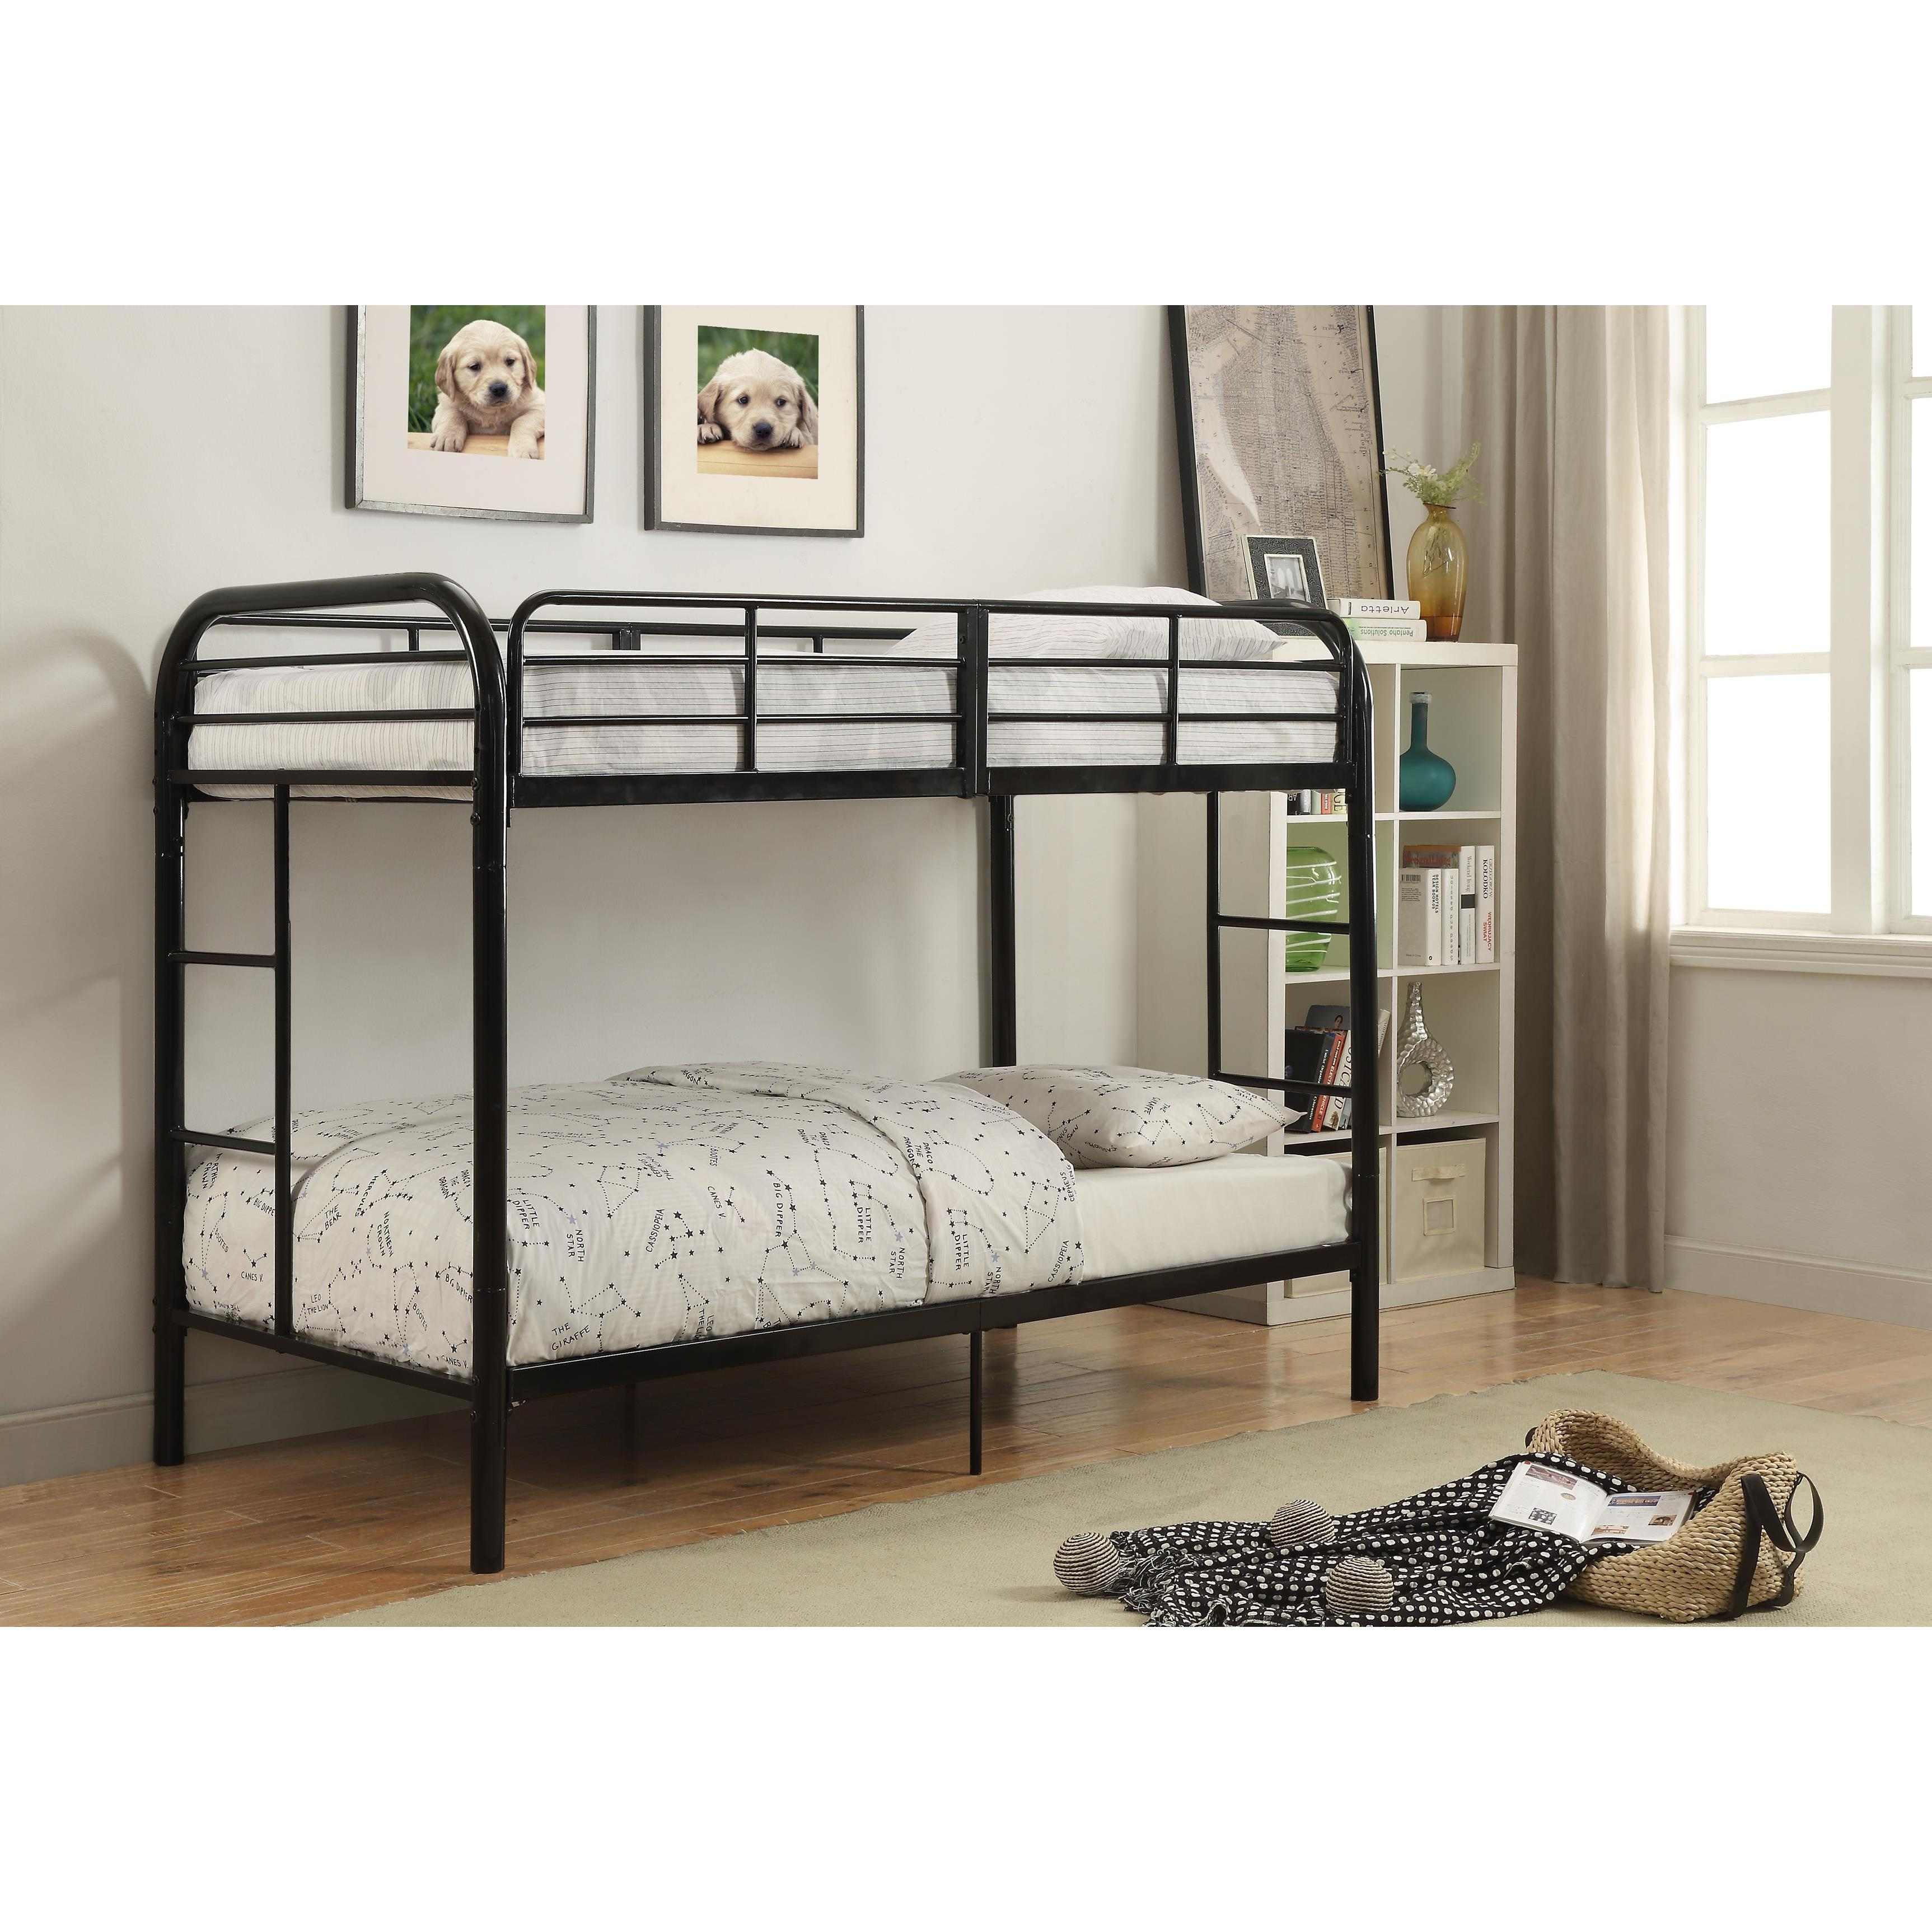 Picture of: Bunk Bed Twin Over Twin Black On Sale Overstock 15275404